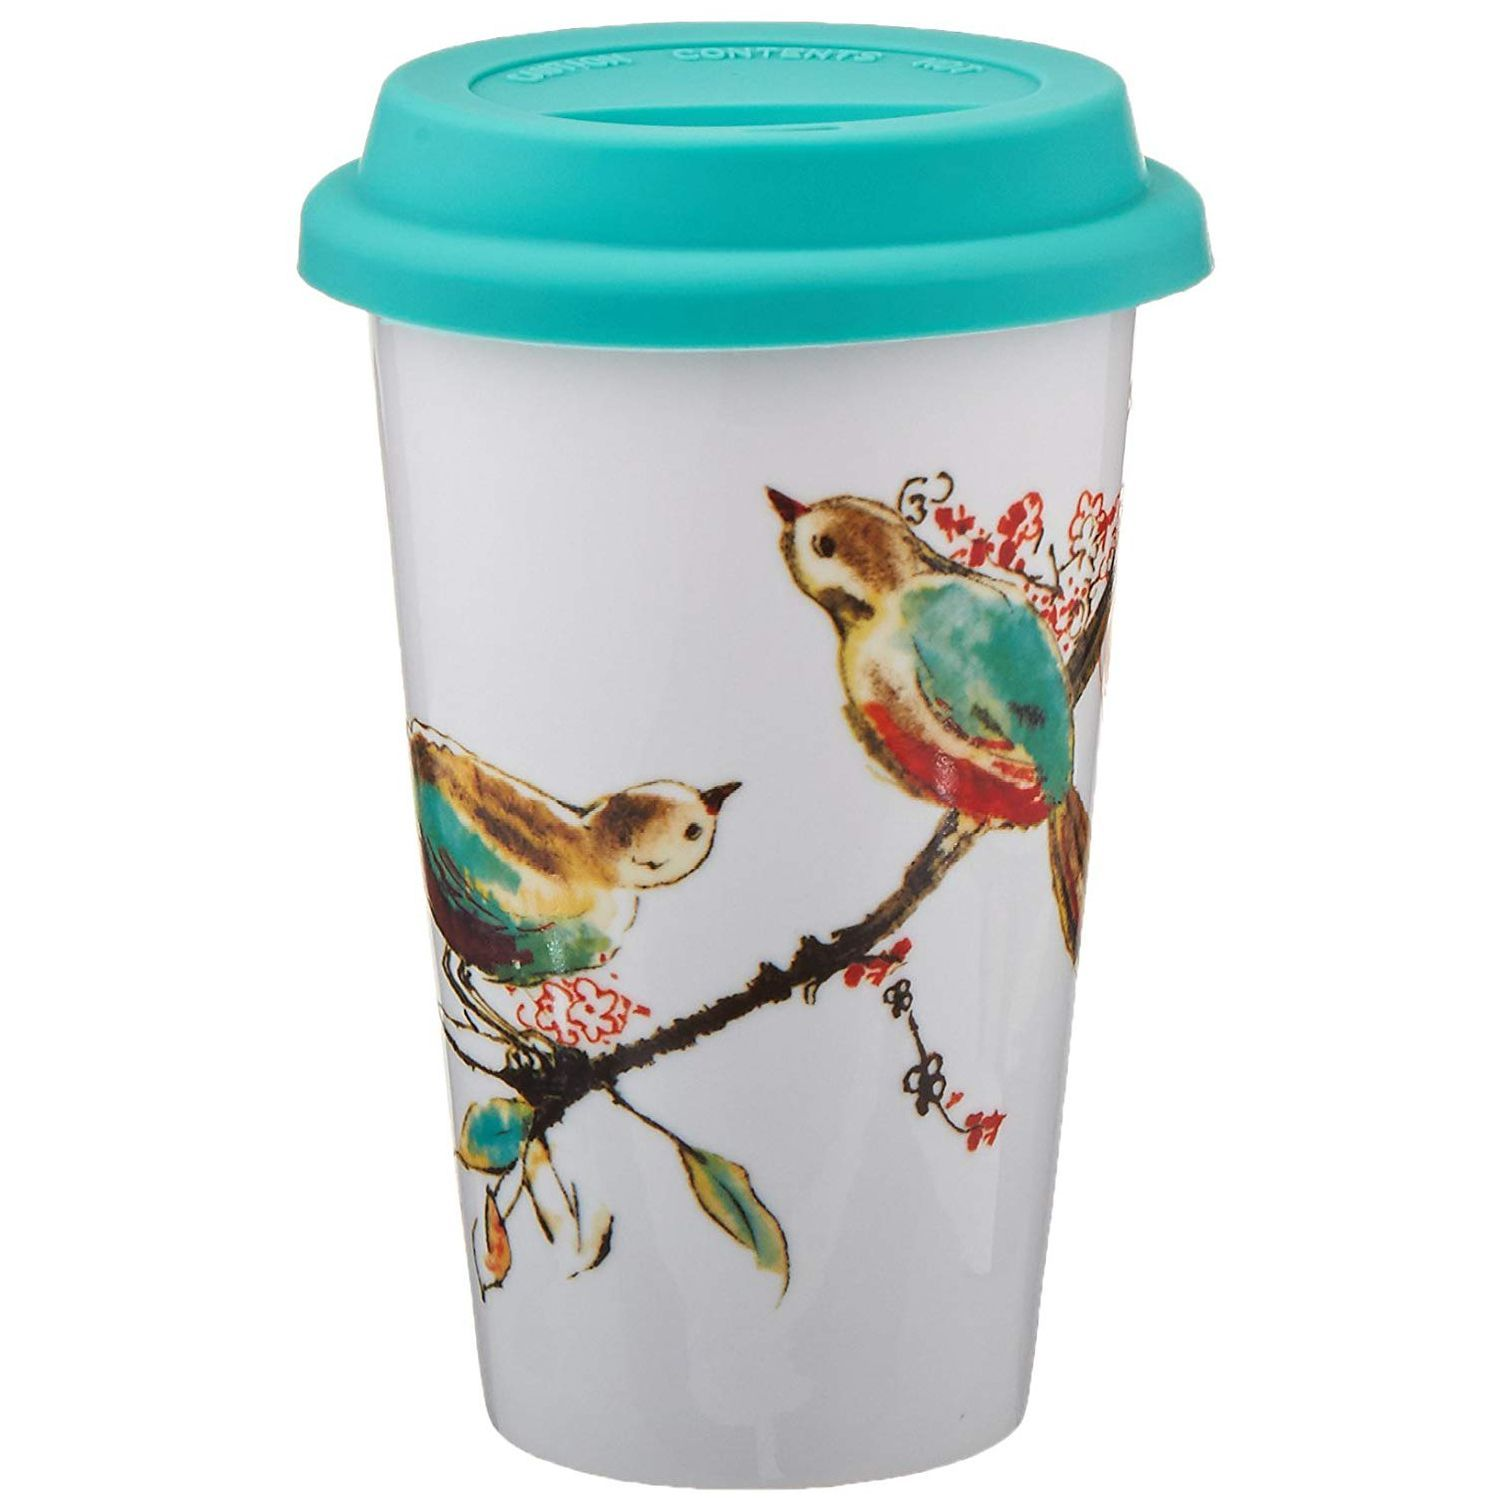 11 Best Travel Coffee Mug Reviews 2020